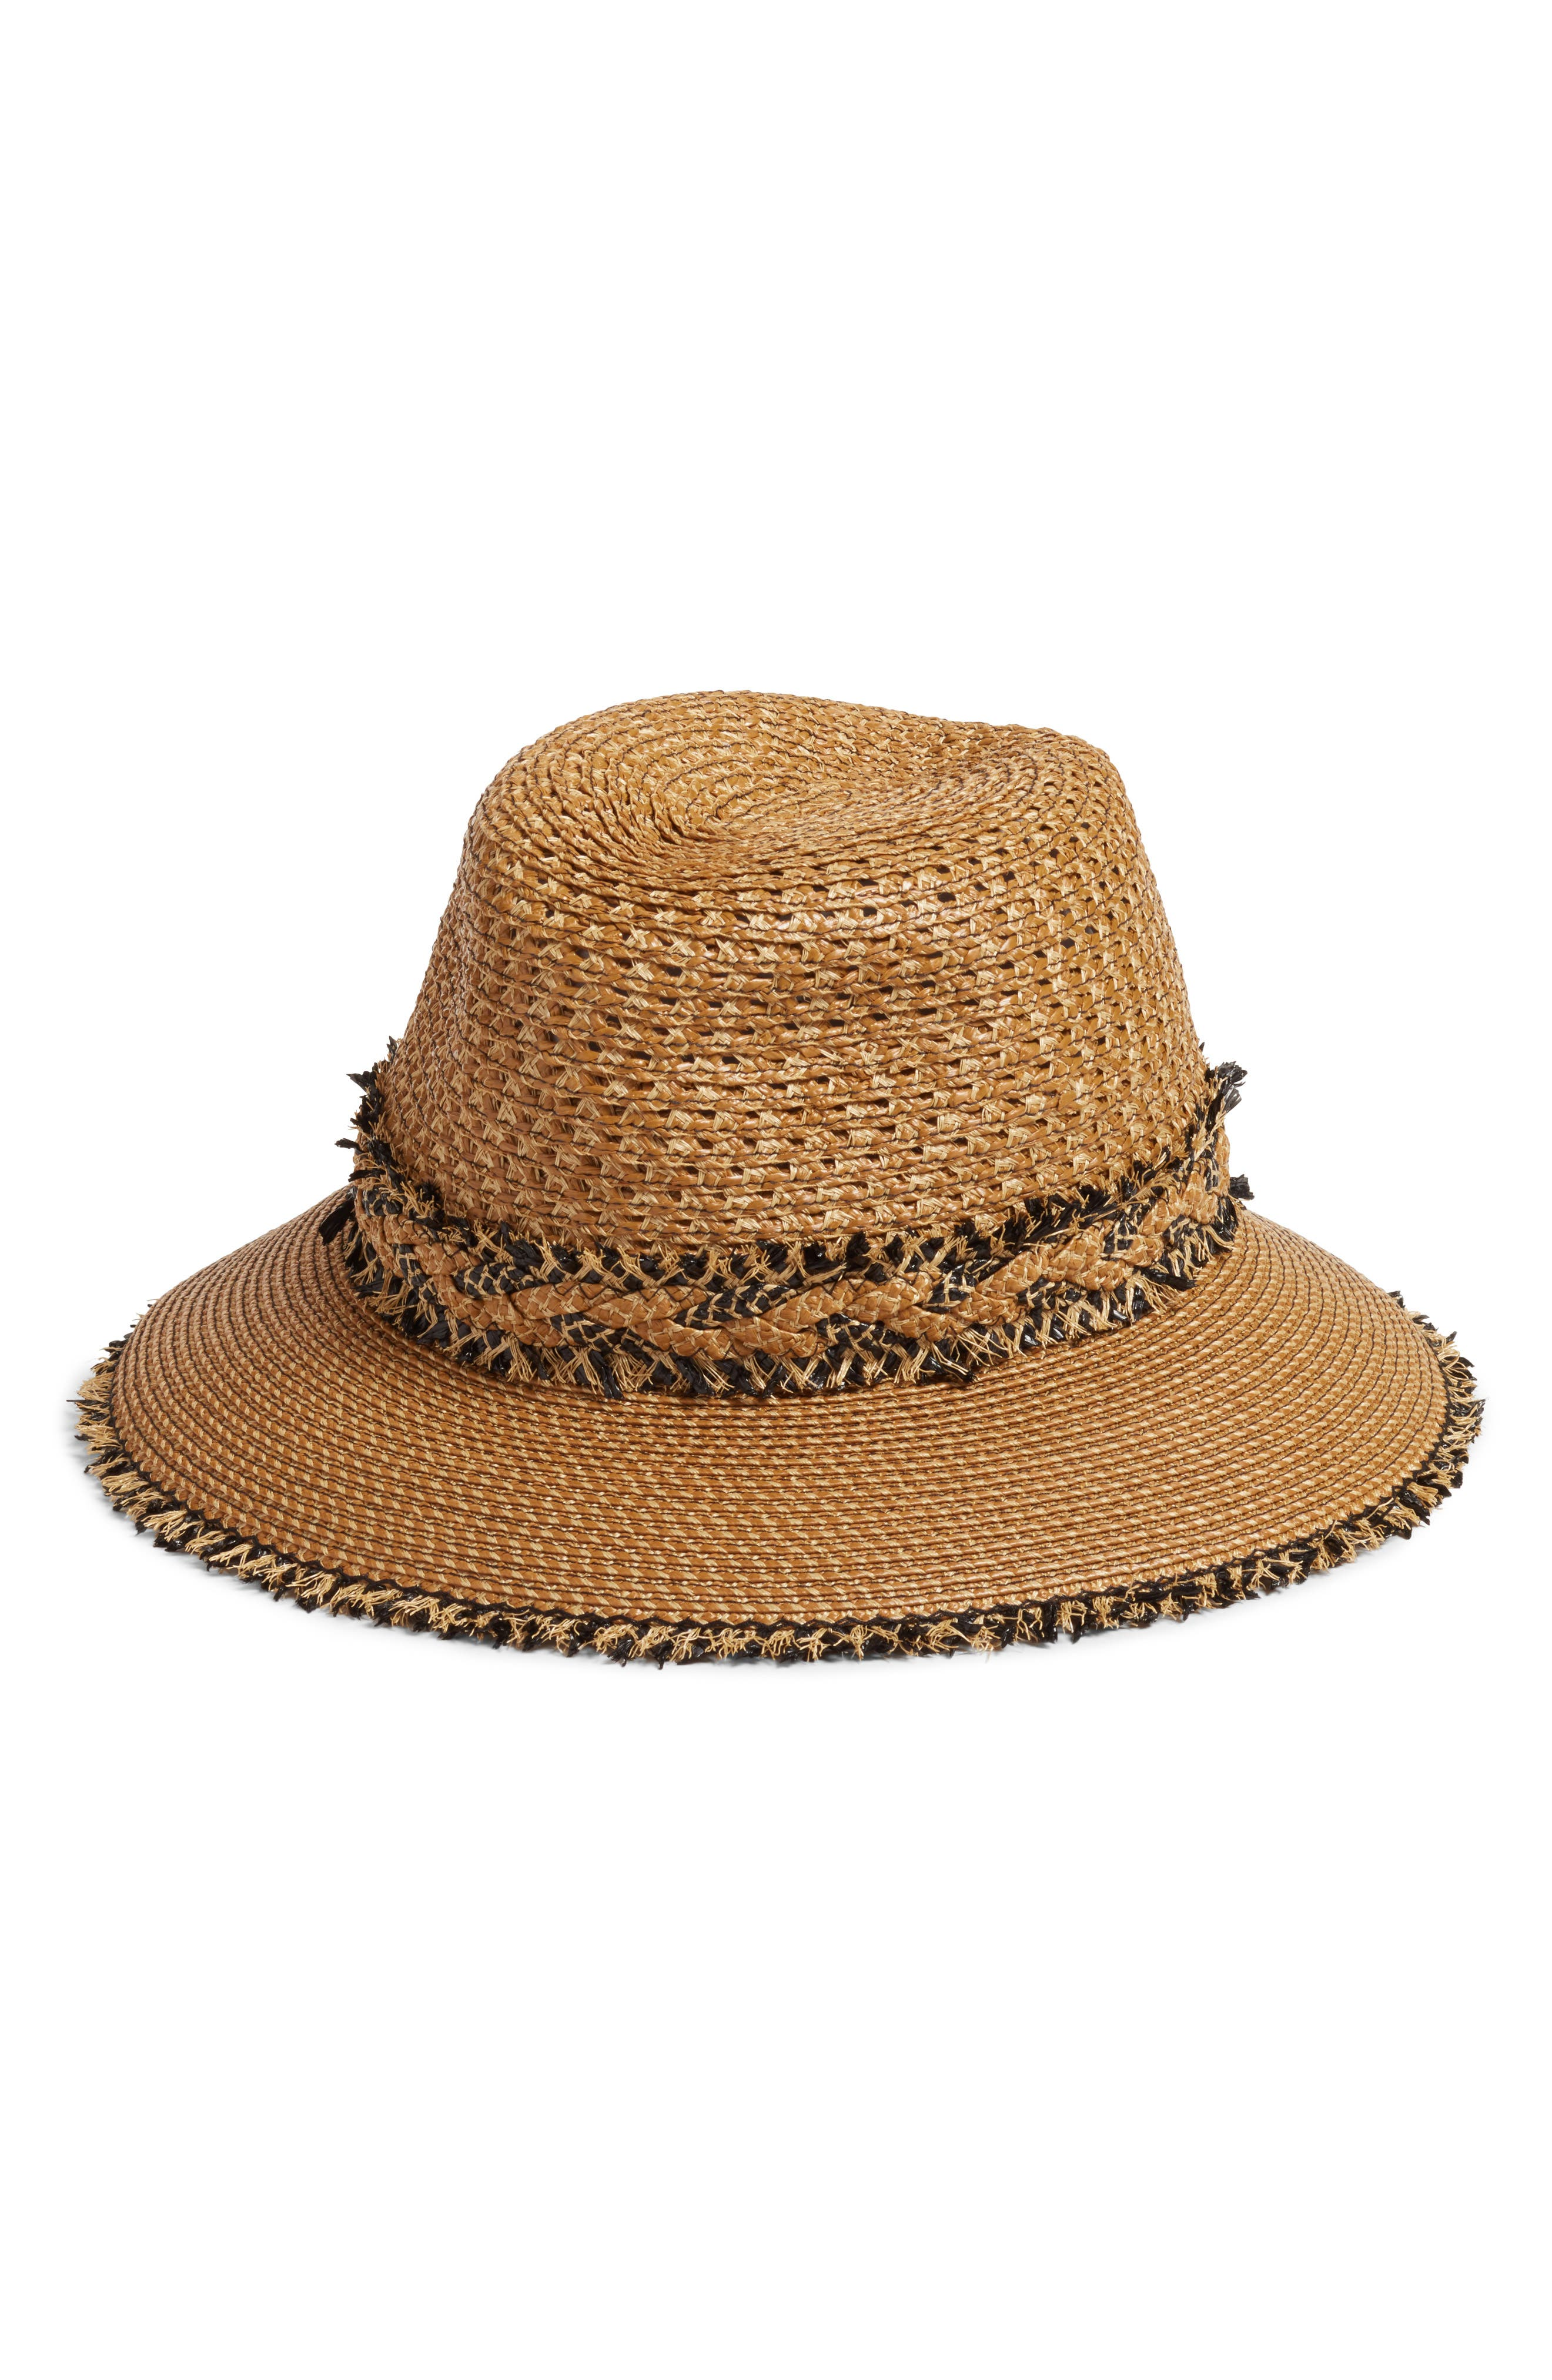 Lulu Squishee<sup>®</sup> Straw Hat,                             Main thumbnail 1, color,                             Natural/ Black Mix